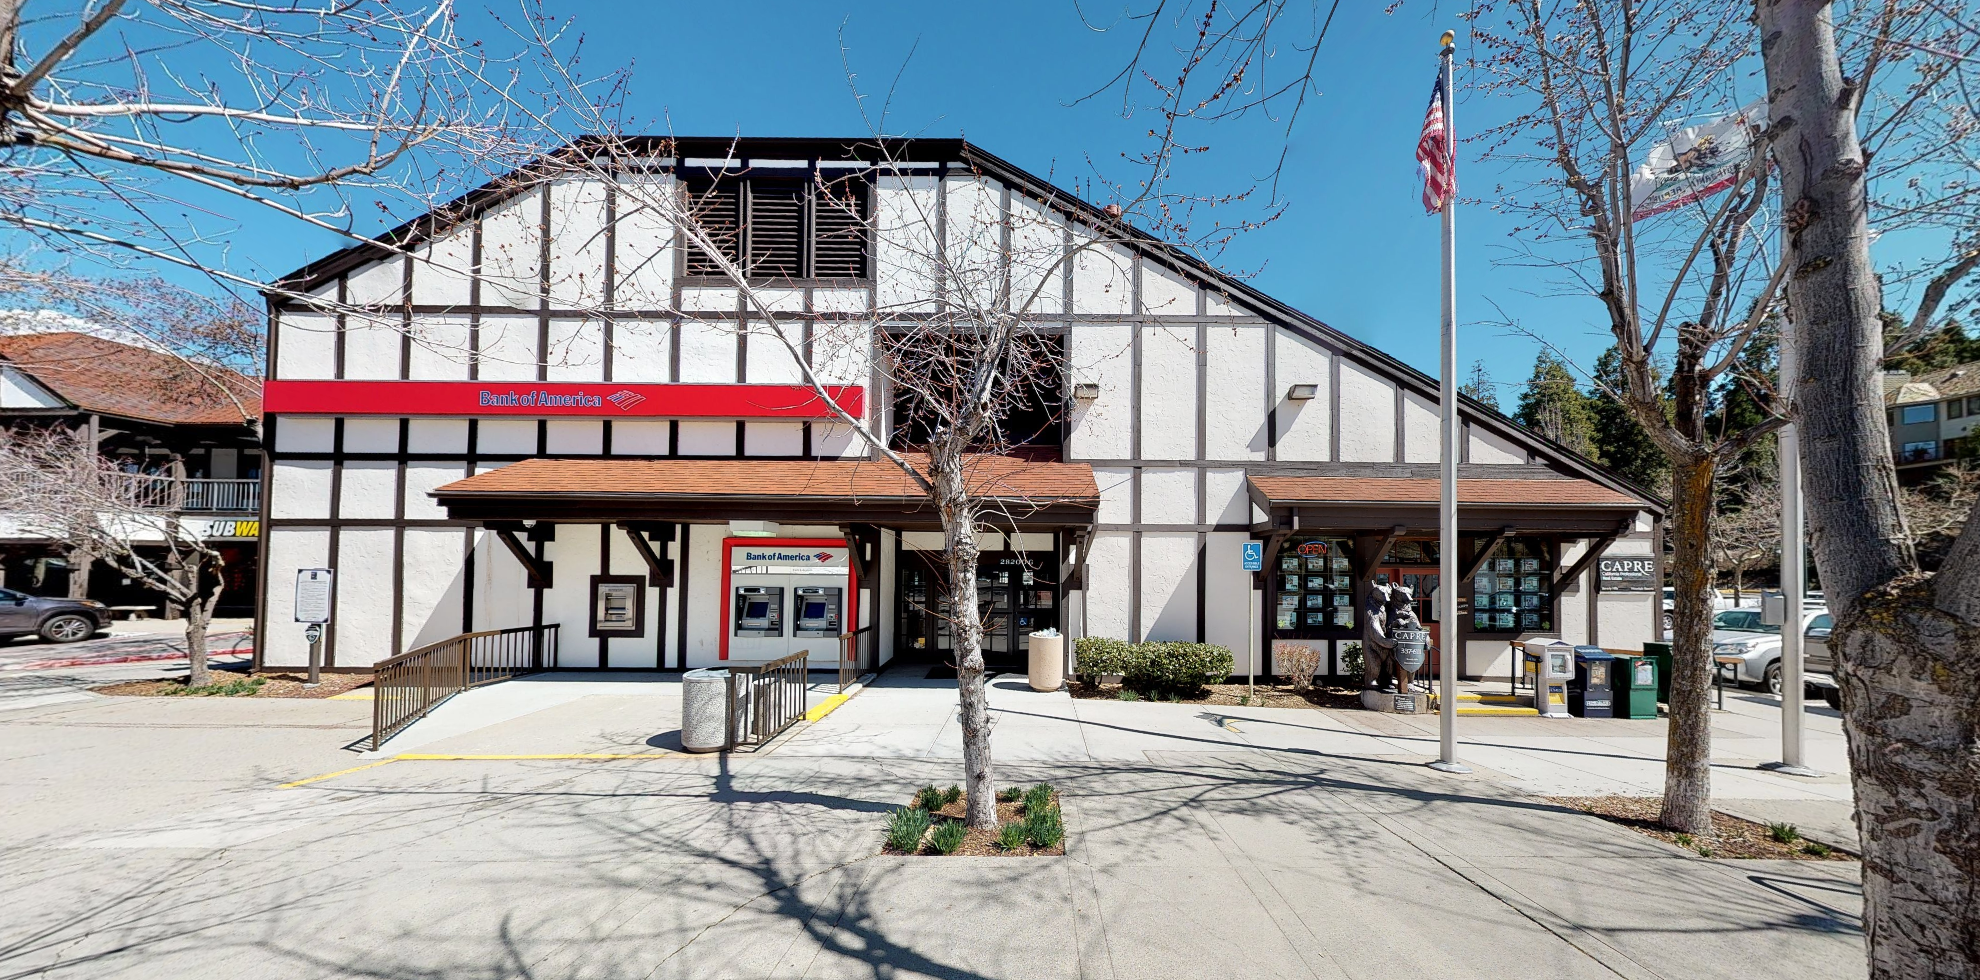 Bank of America financial center with walk-up ATM | 28200 State Hwy 189, Lake Arrowhead, CA 92352